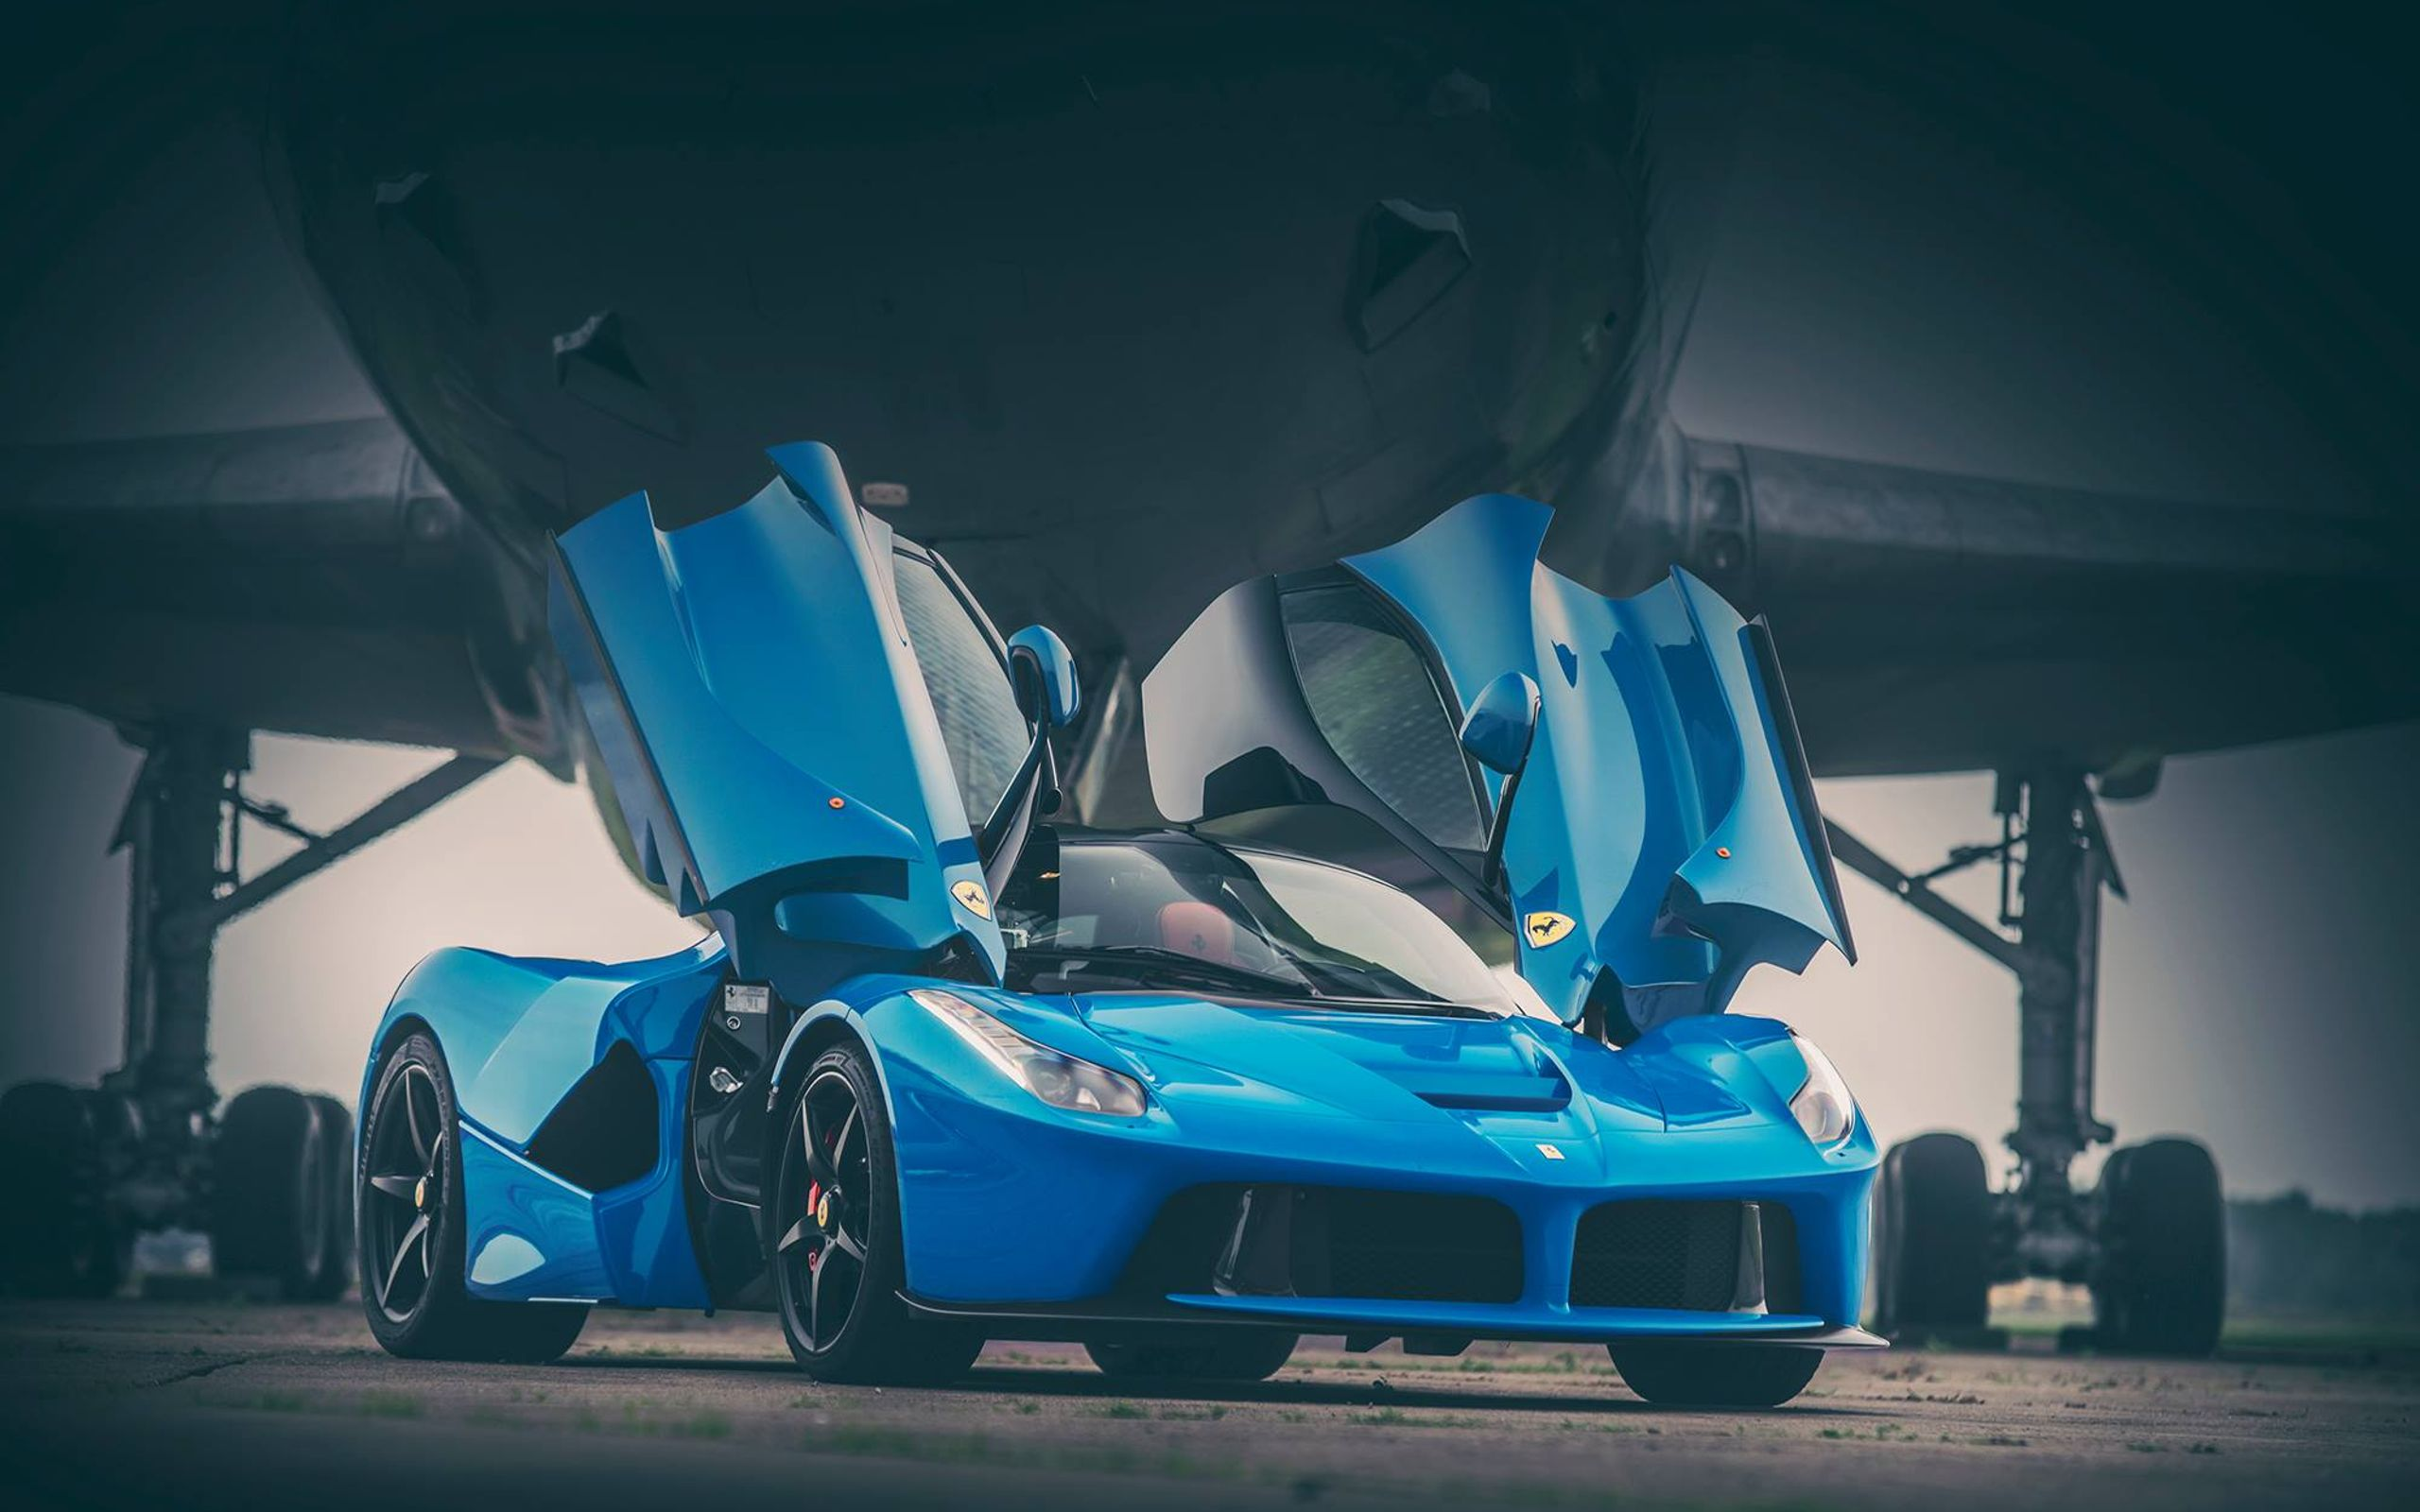 These LaFerrari Wallpapers Show Off The Prancing Horse Looking Classy In Blue